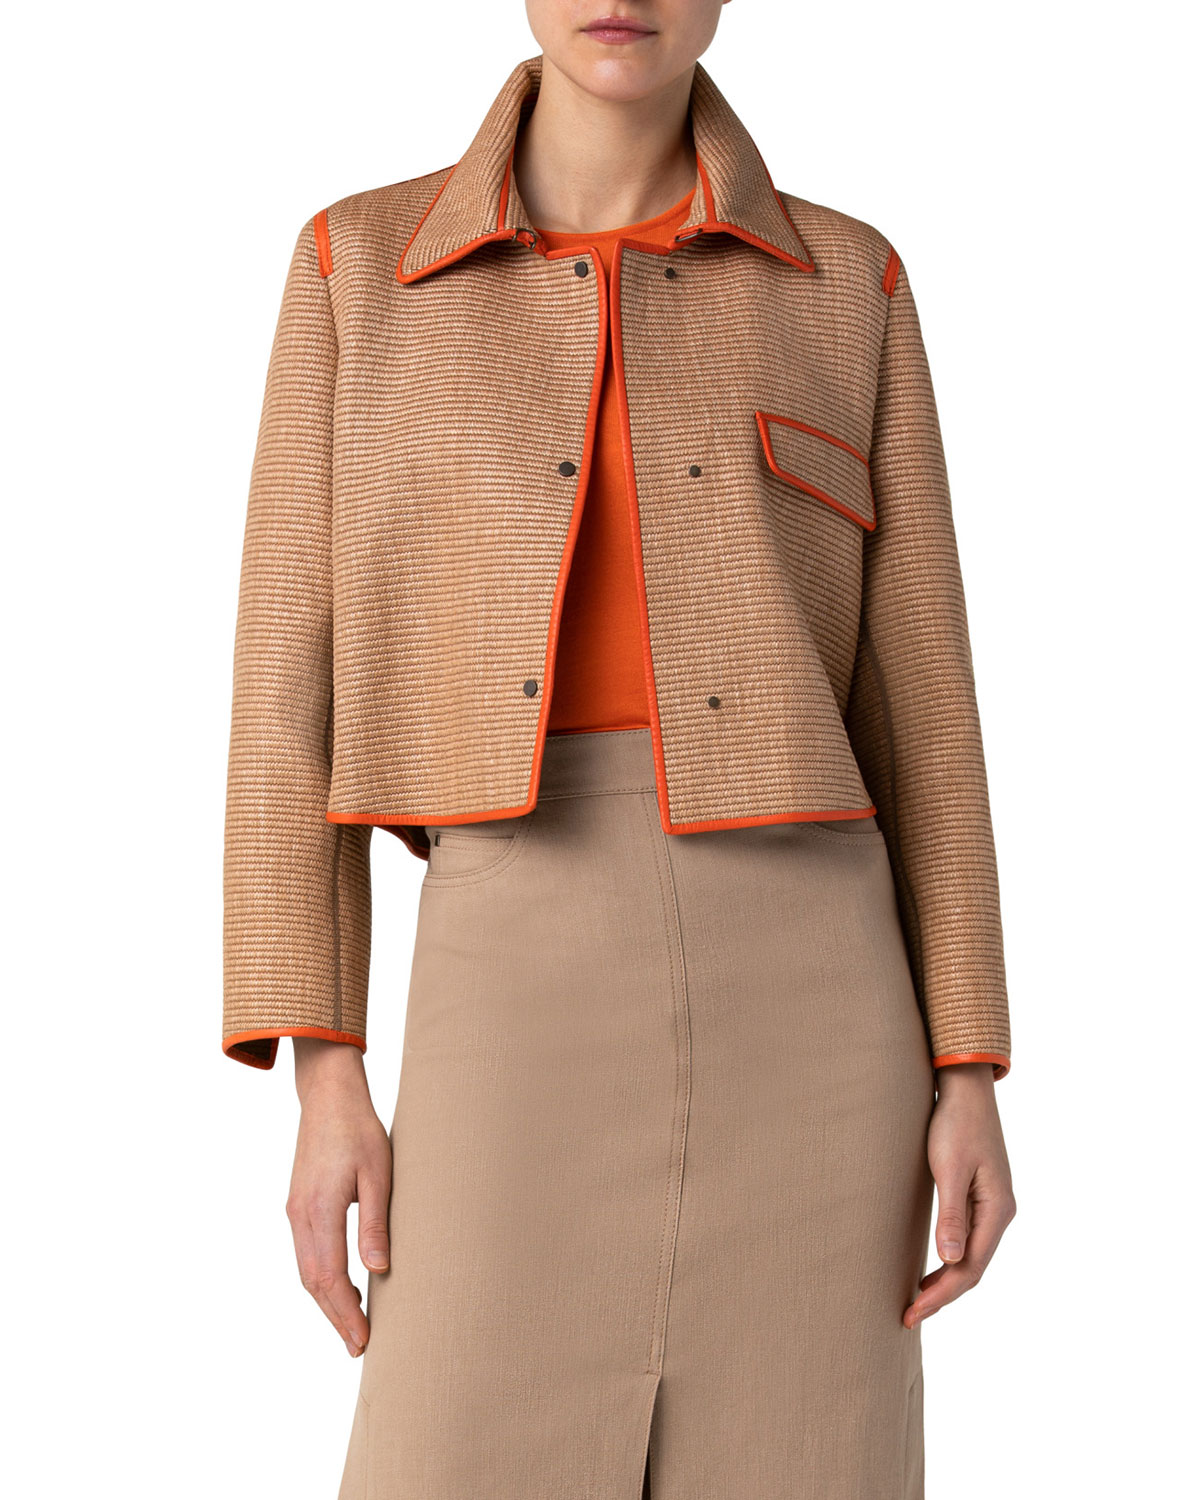 Akris Leathers CROPPED RAFFIA JACKET W/ LEATHER PIPING